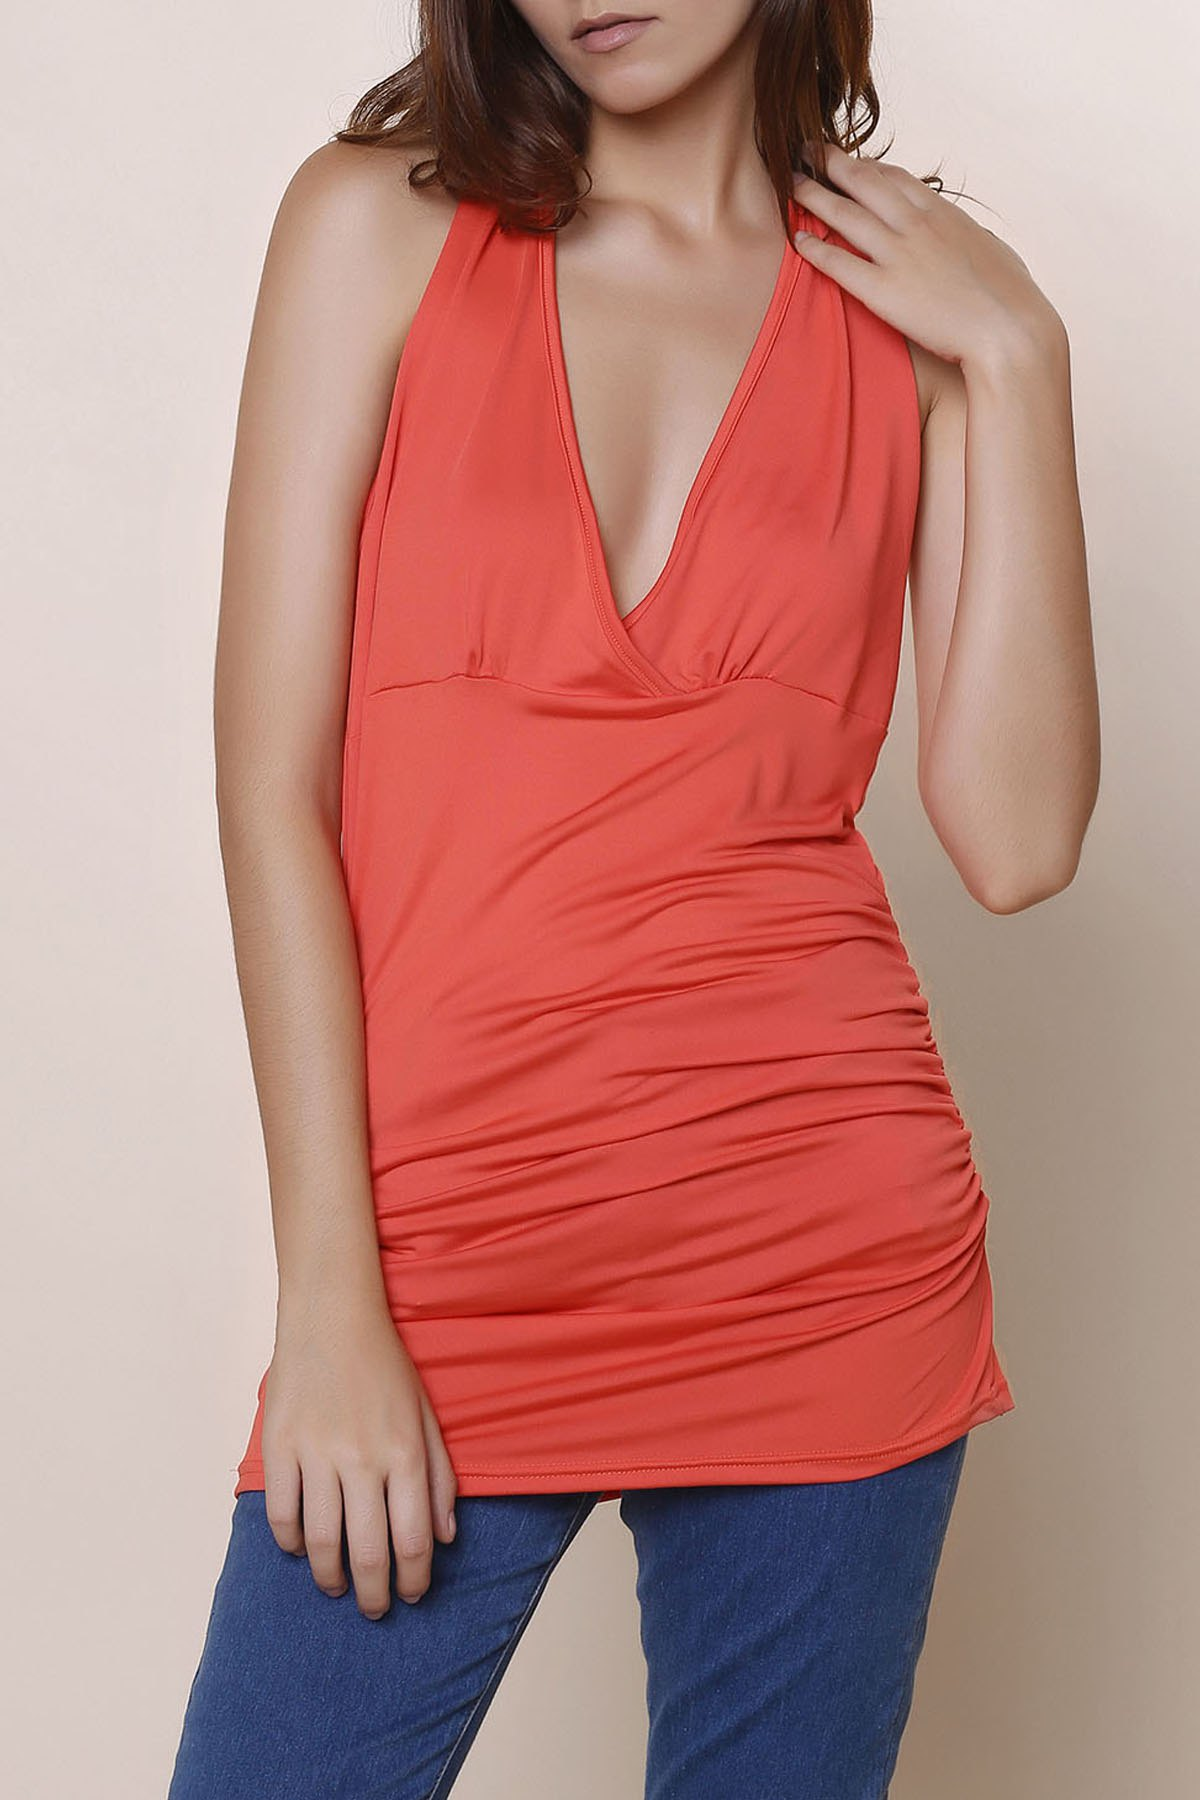 Halter Sleeveless Solid Color Backless Ruched Tank Top - RED S